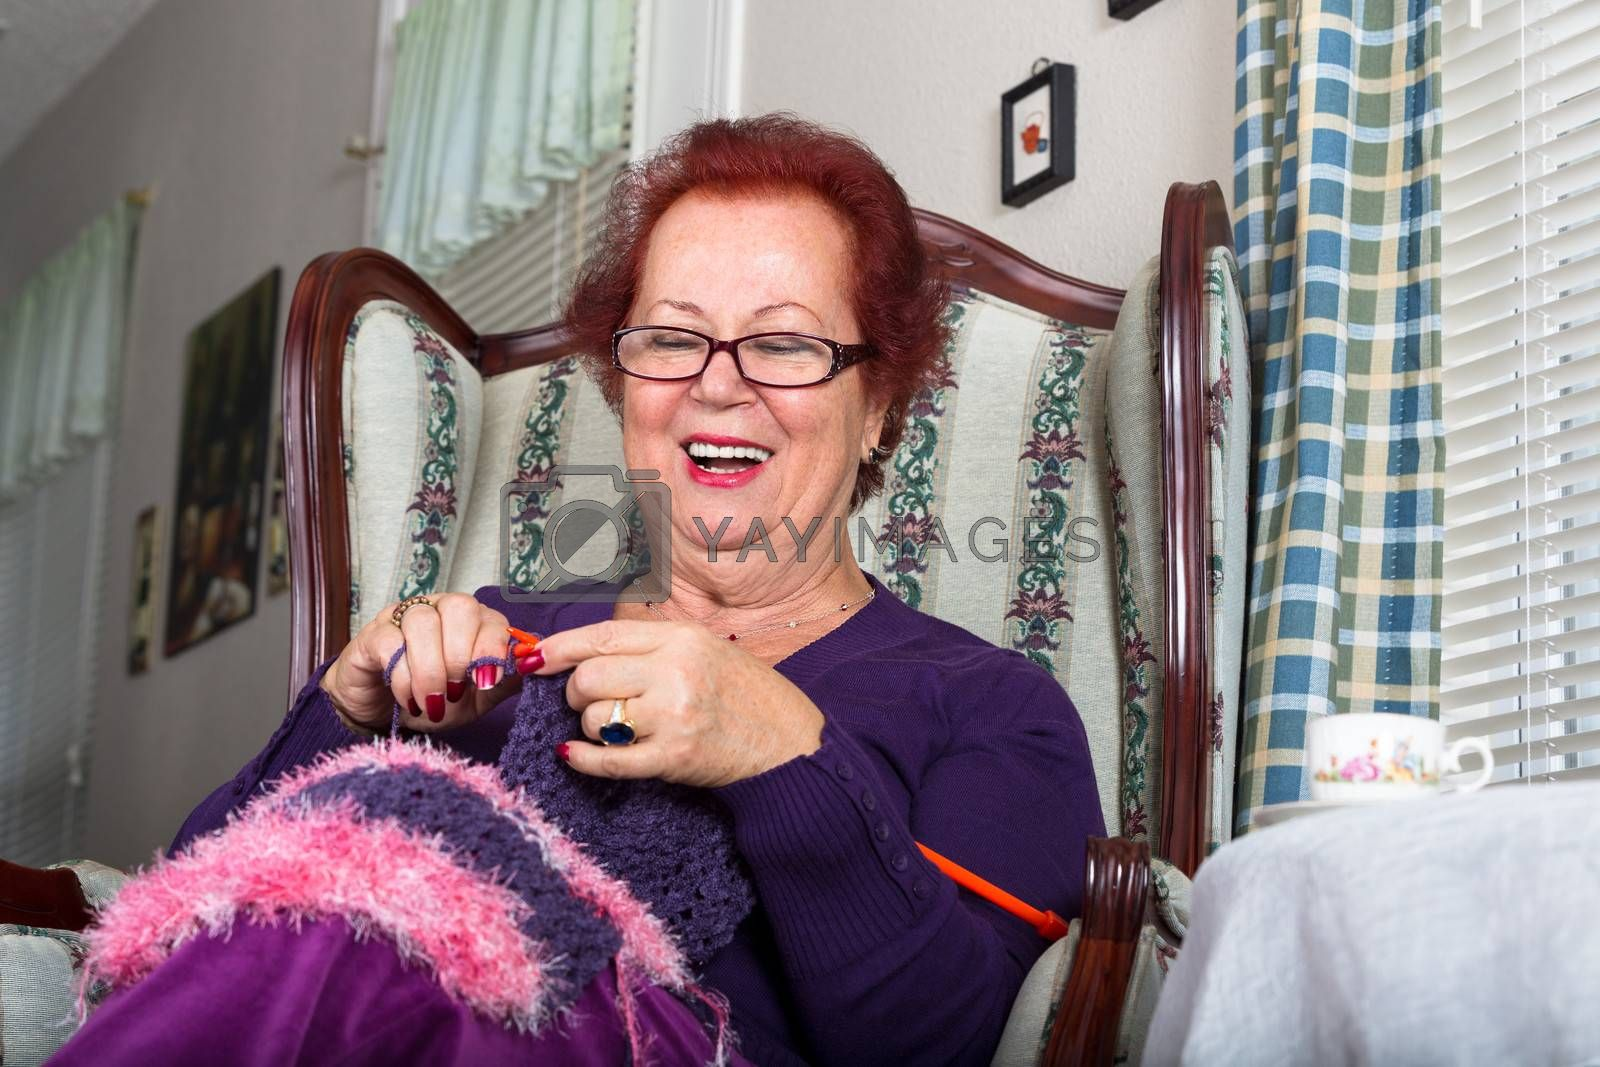 Senior happy woman laughing while knitting, she sits on a fancy old classic style chair